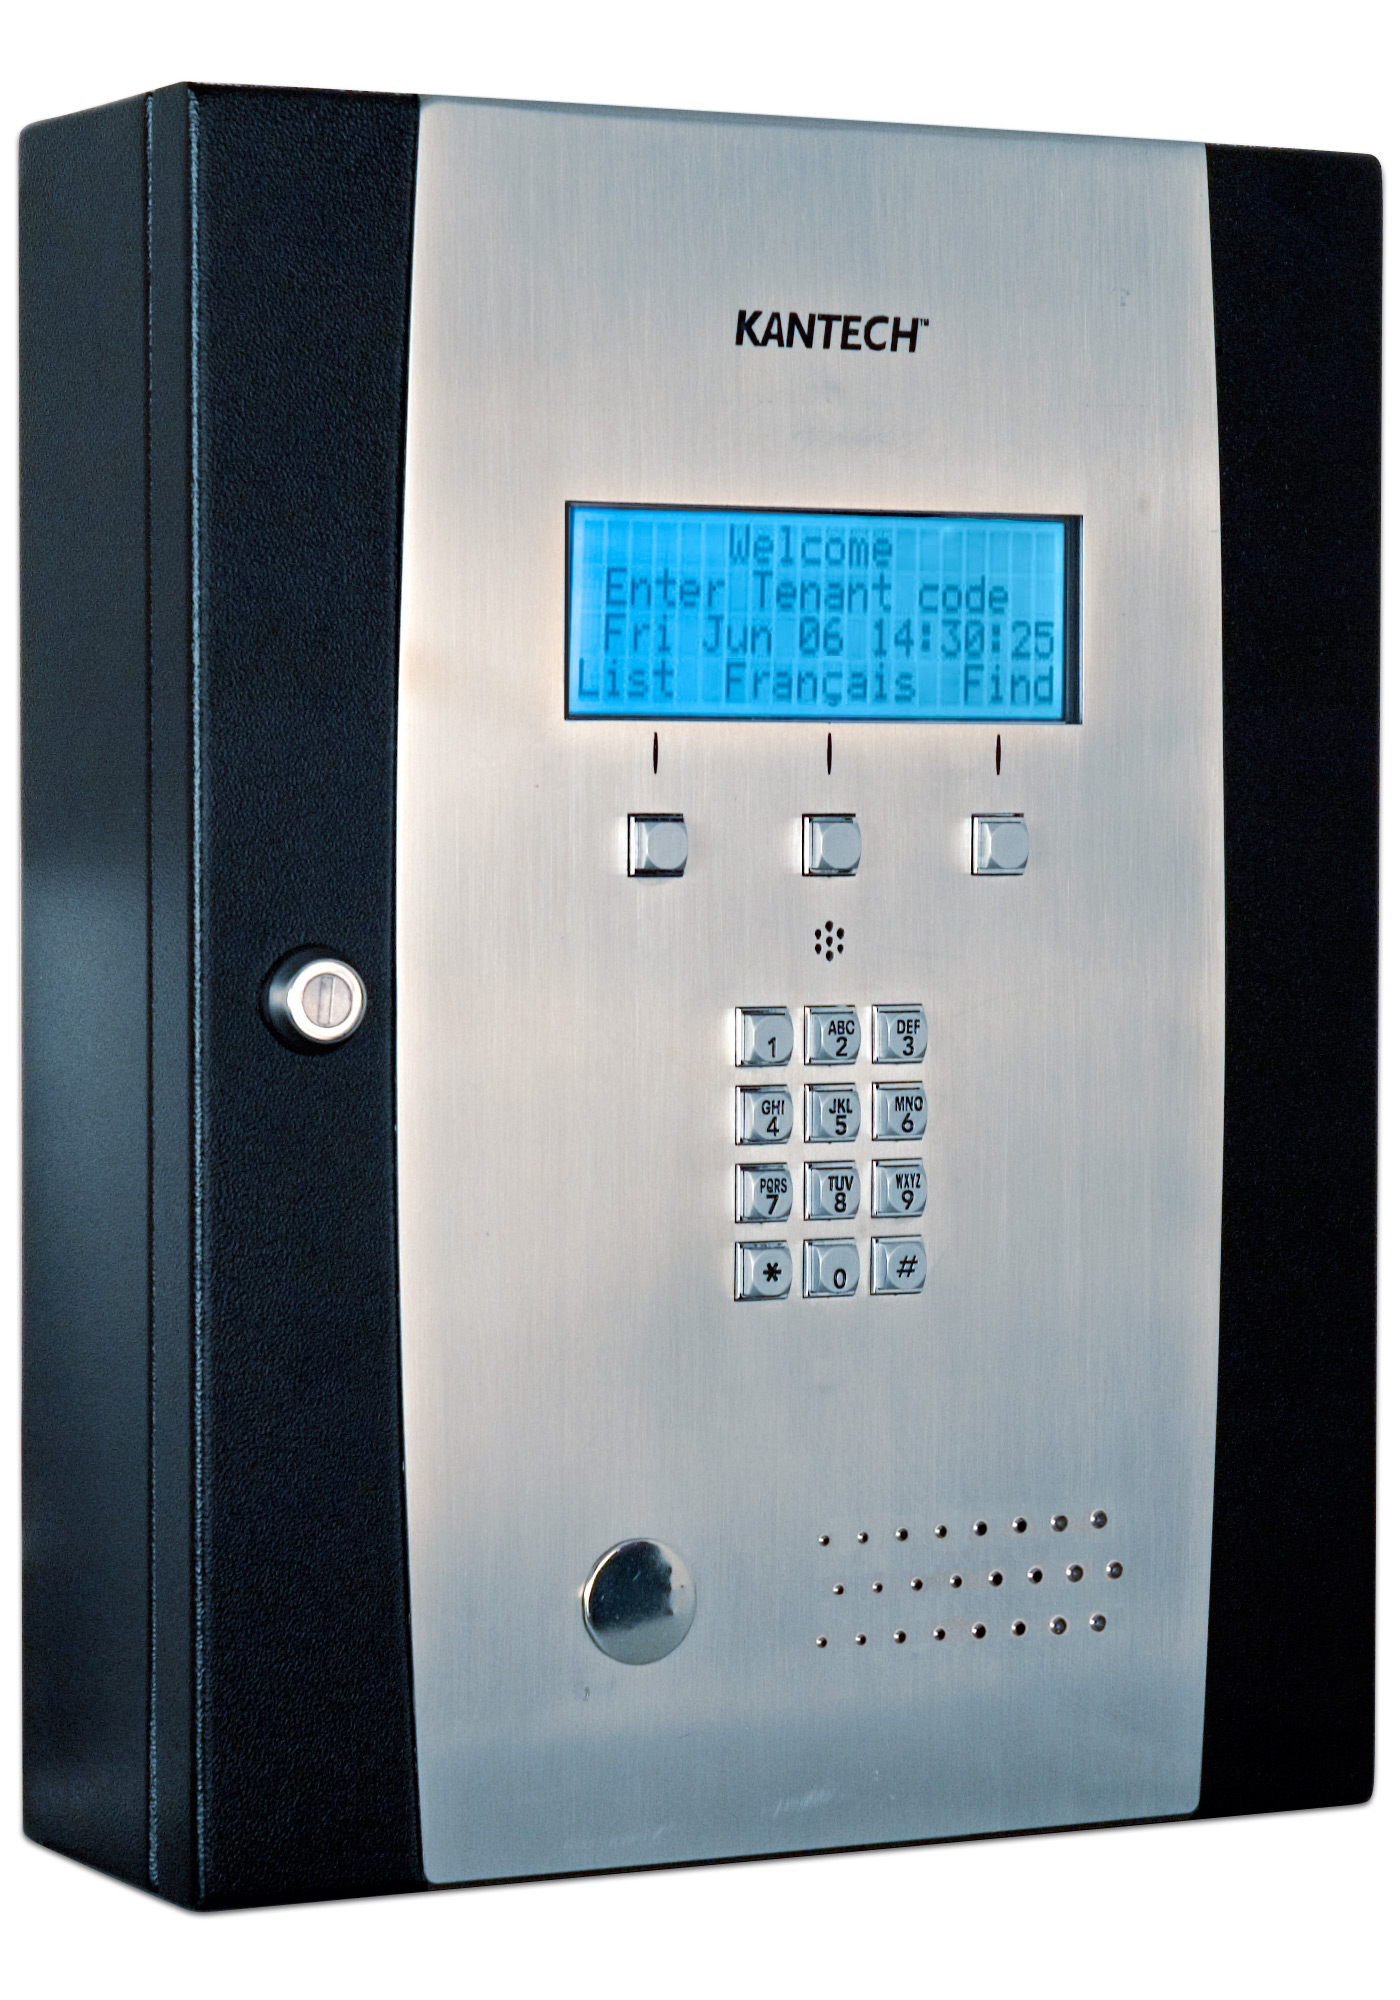 KTES-US KANTECH TELEPHONE ENTRY 3000 TENANTS ************************* SPECIAL ORDER ITEM NO RETURNS OR SUBJECT TO RESTOCK FEE *************************